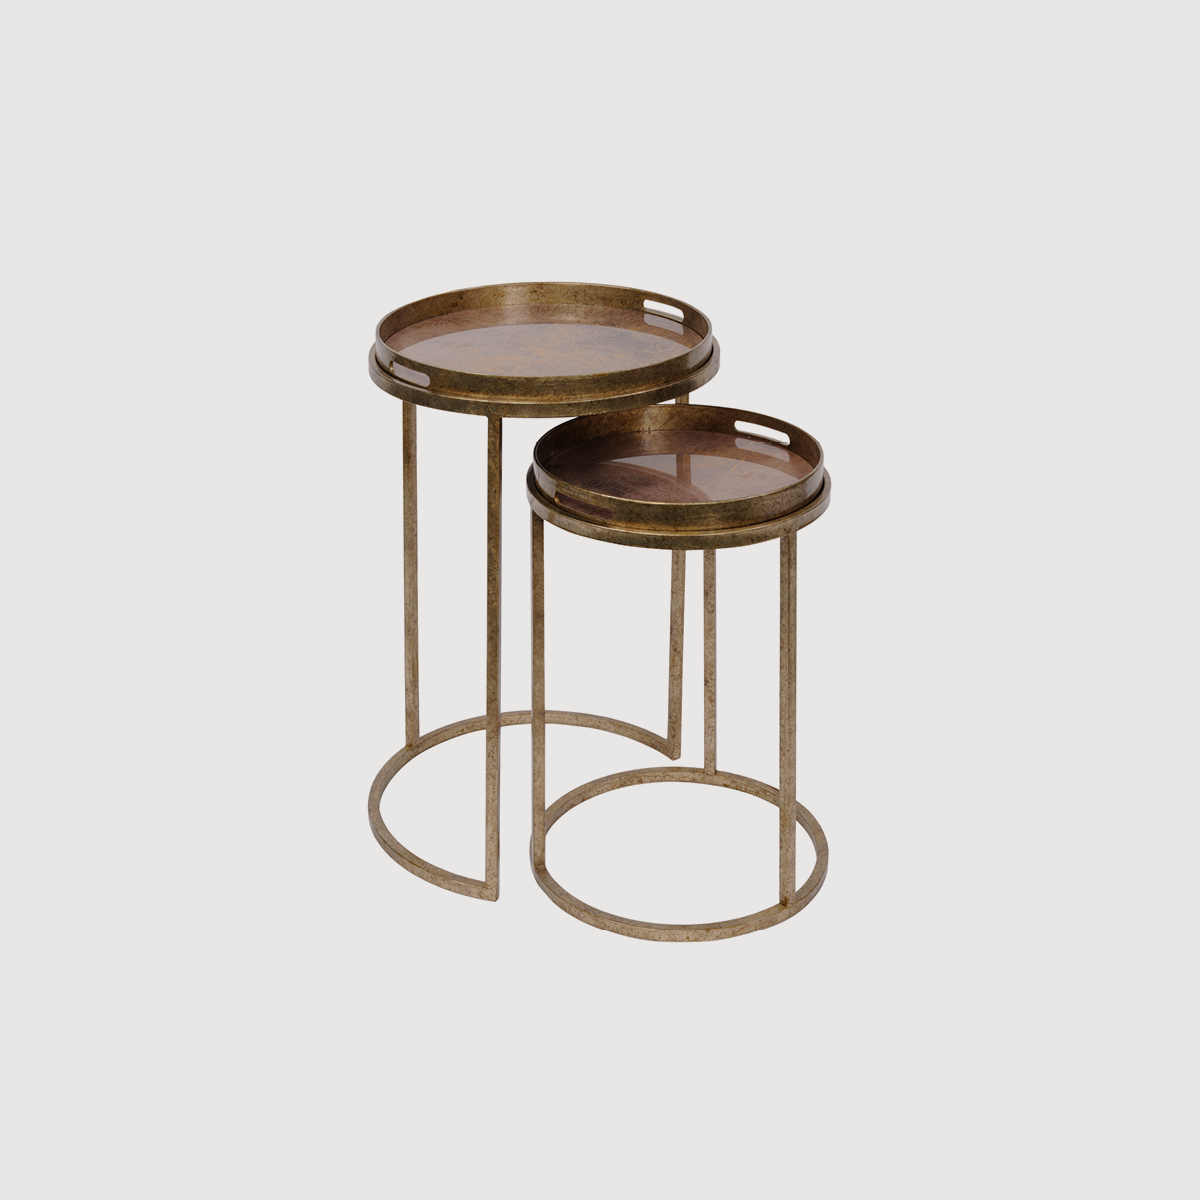 Antique Gold Atlas Side Tables – set of 2